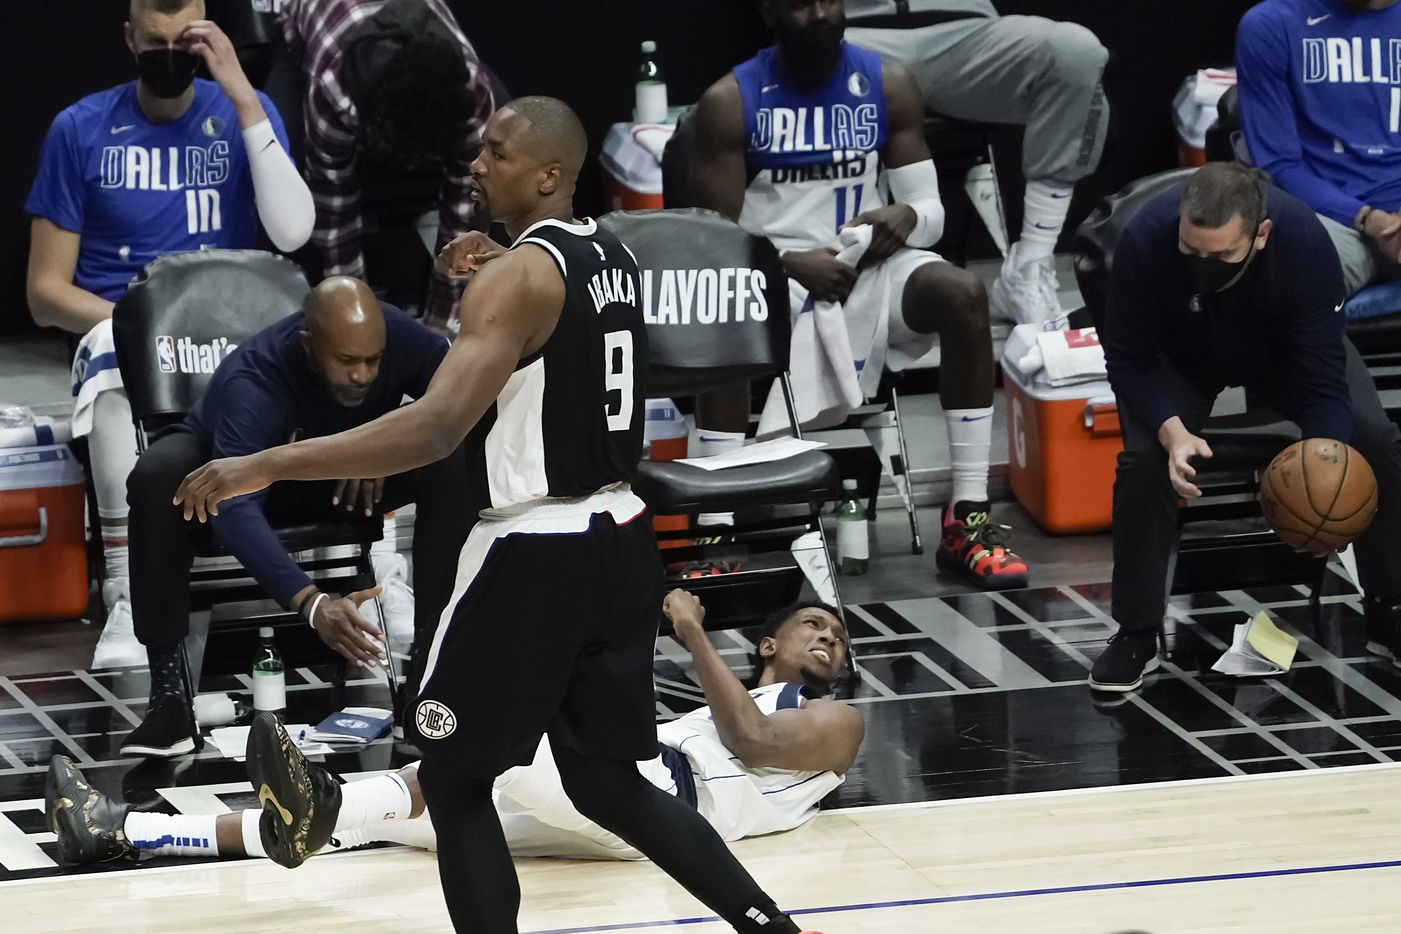 Dallas Mavericks guard Josh Richardson (0) tumbles chasing a loose ball against LA Clippers center Serge Ibaka (9) during the second half of an NBA playoff basketball game at Staples Center on Saturday, May 22, 2021, in Los Angeles.